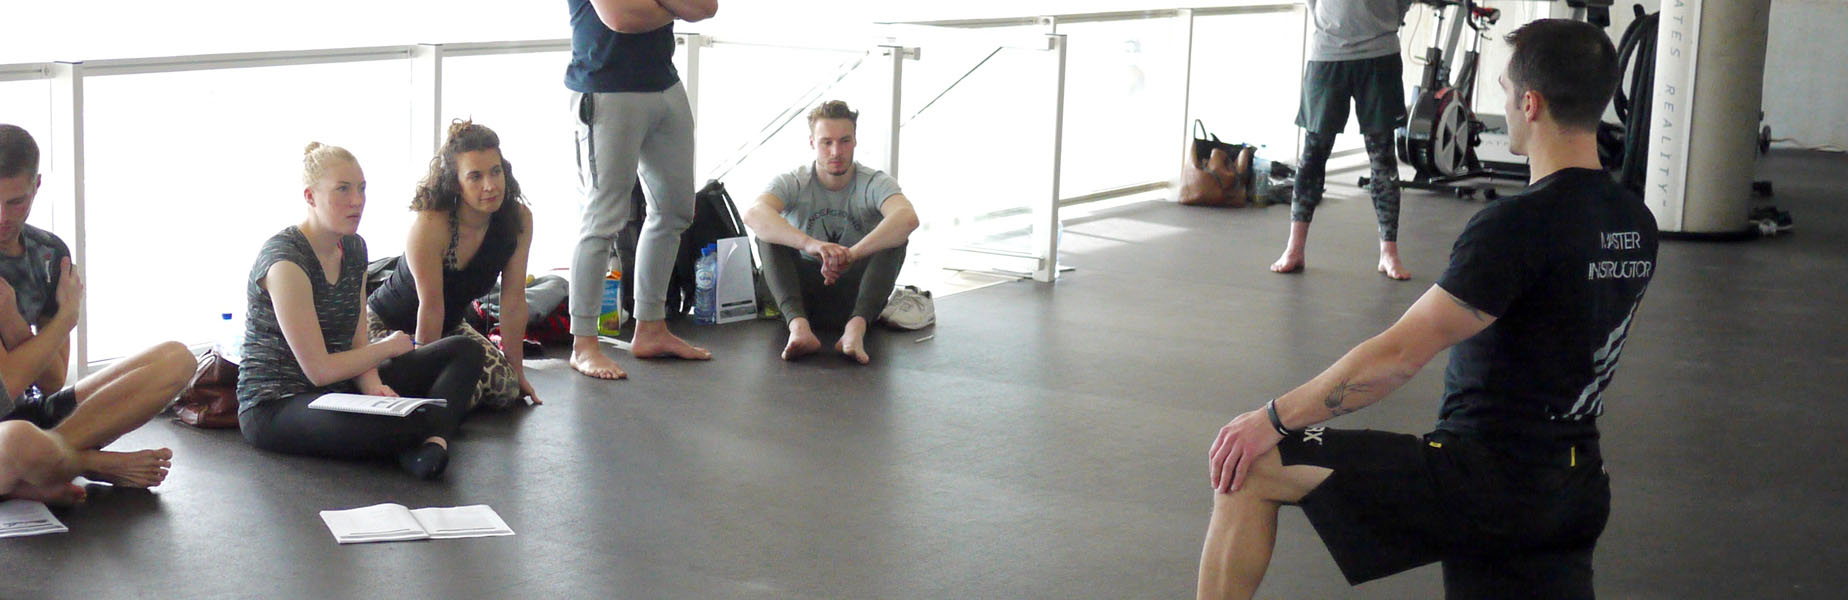 Sascha Müller - Teaching, Master Trainer Animal Flow